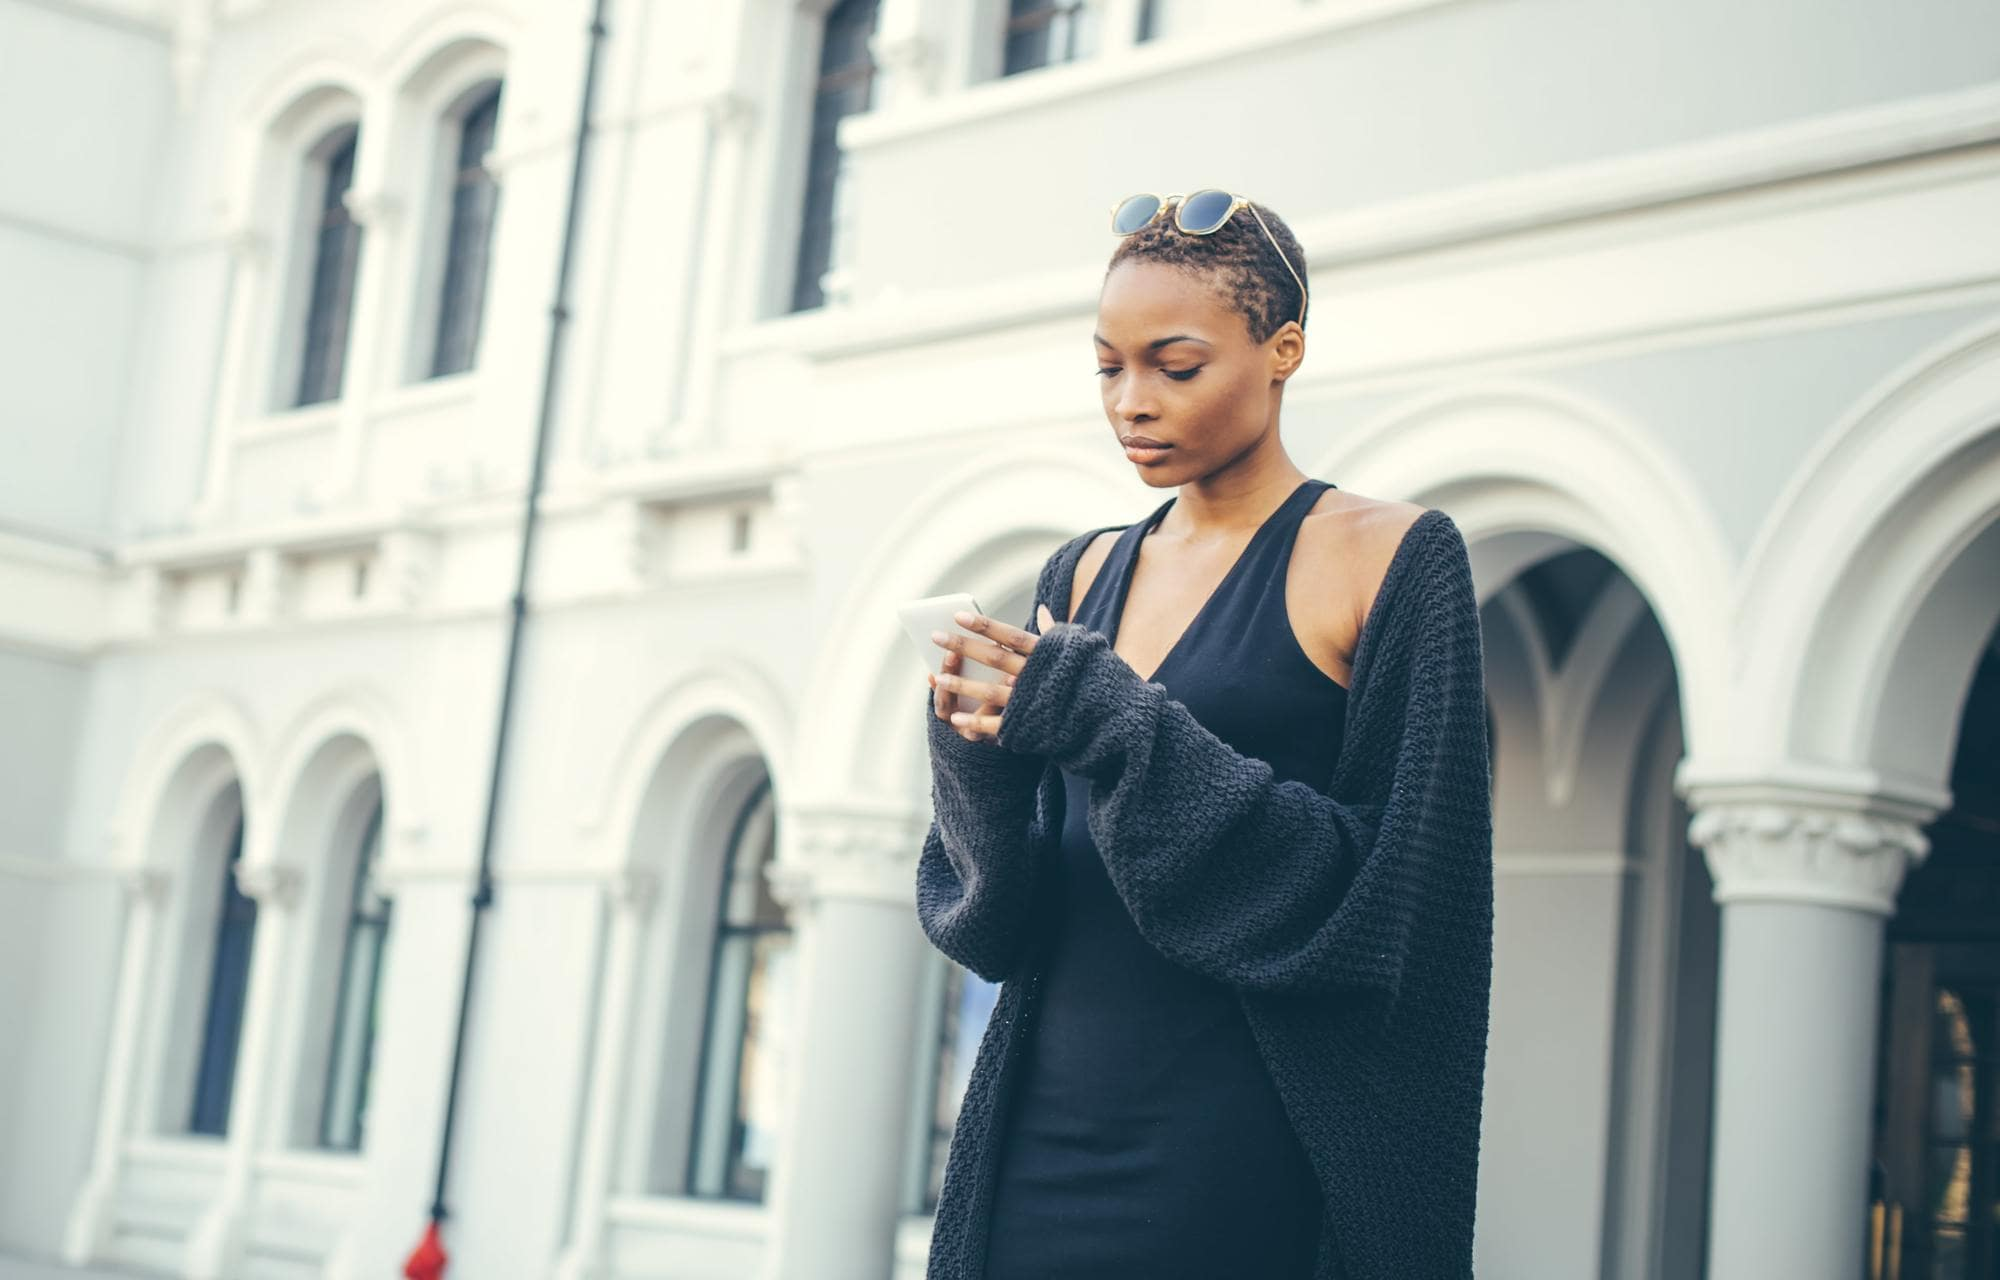 Top Shaved Black Womens Haircuts 2018/2019 : 20 of the Best Looks 9